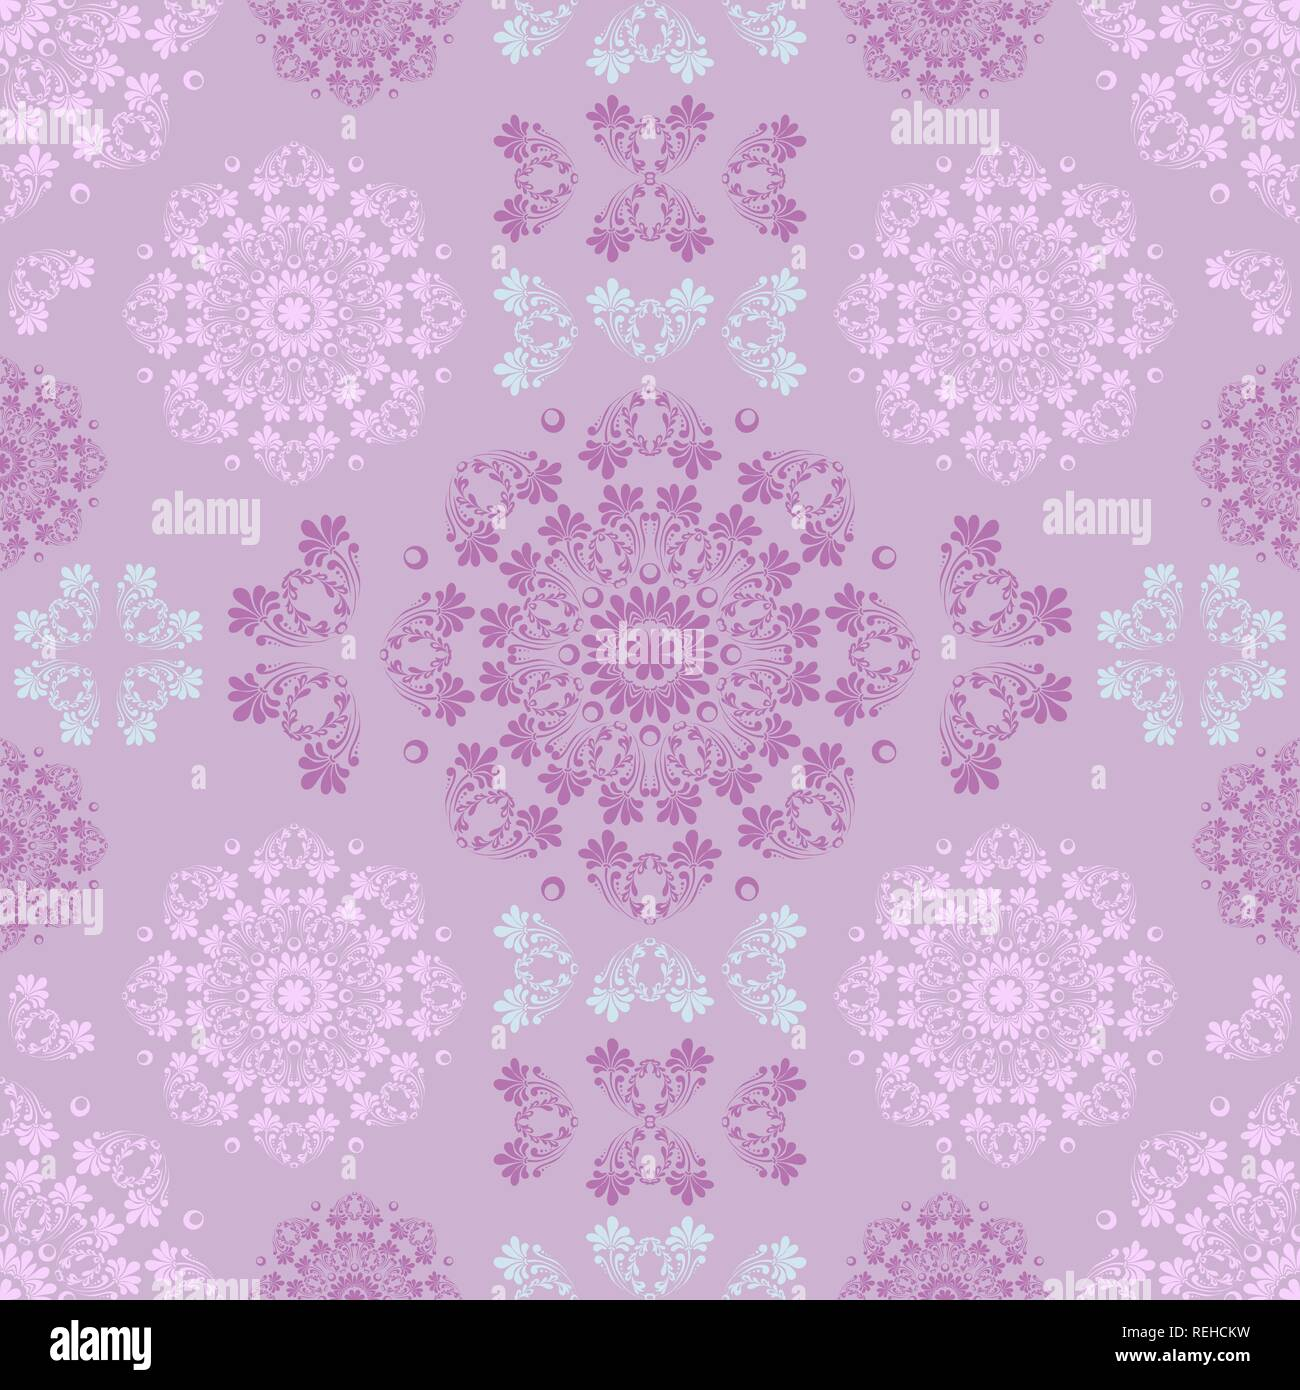 Rose Quartz And Serenity Seamless Pattern For Wall Wallpaper Fabric Textile Design With Mandalas And Decorative Vintage Trendy Color And Vintage Elements Stock Vector Image Art Alamy